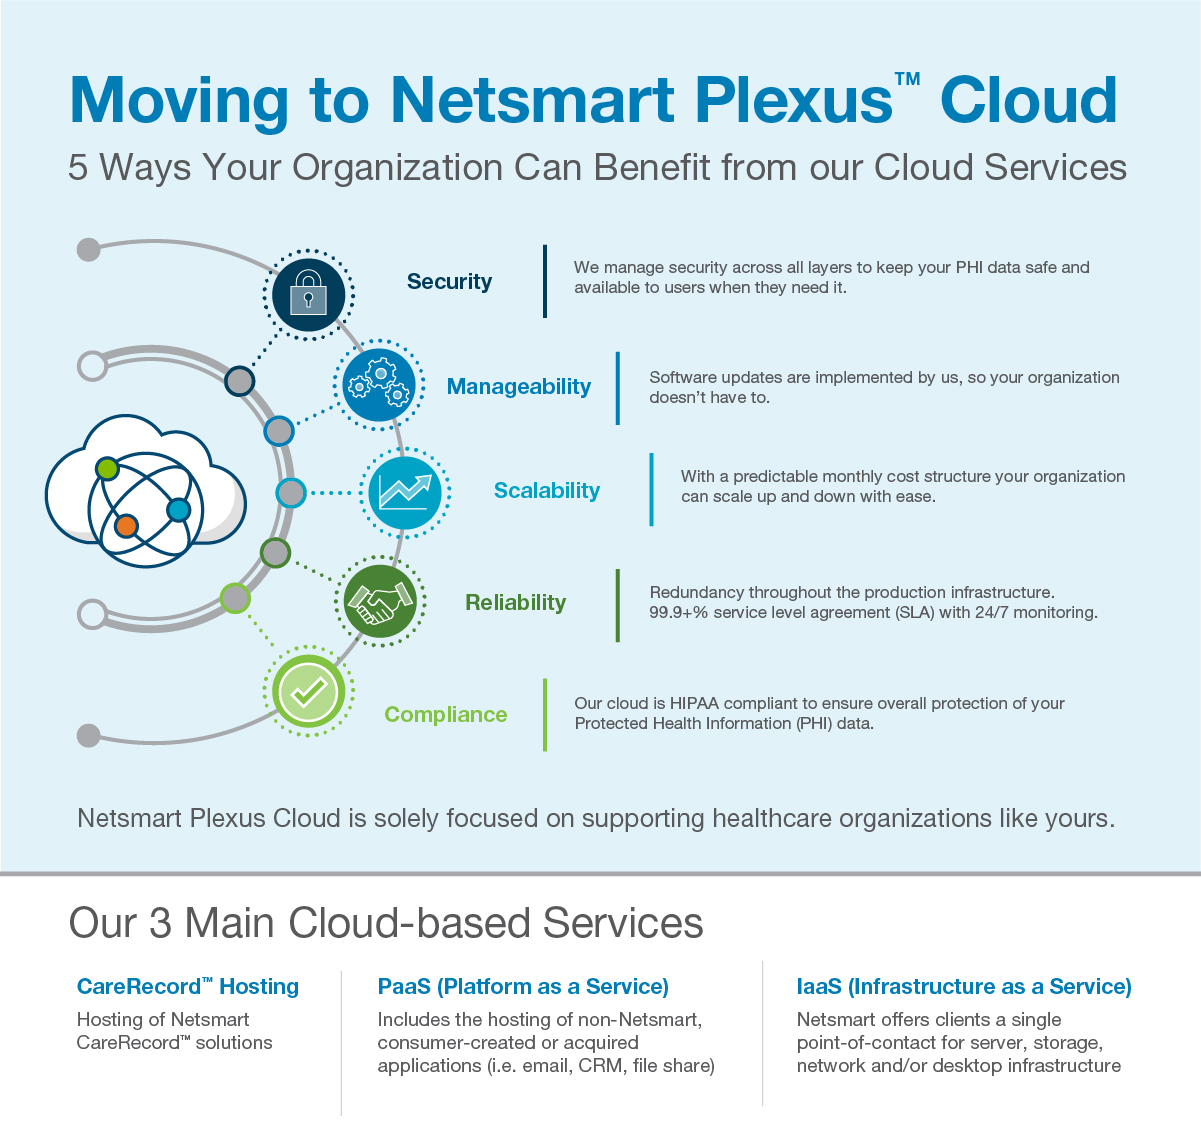 Moving to Netsmart Plexus Cloud